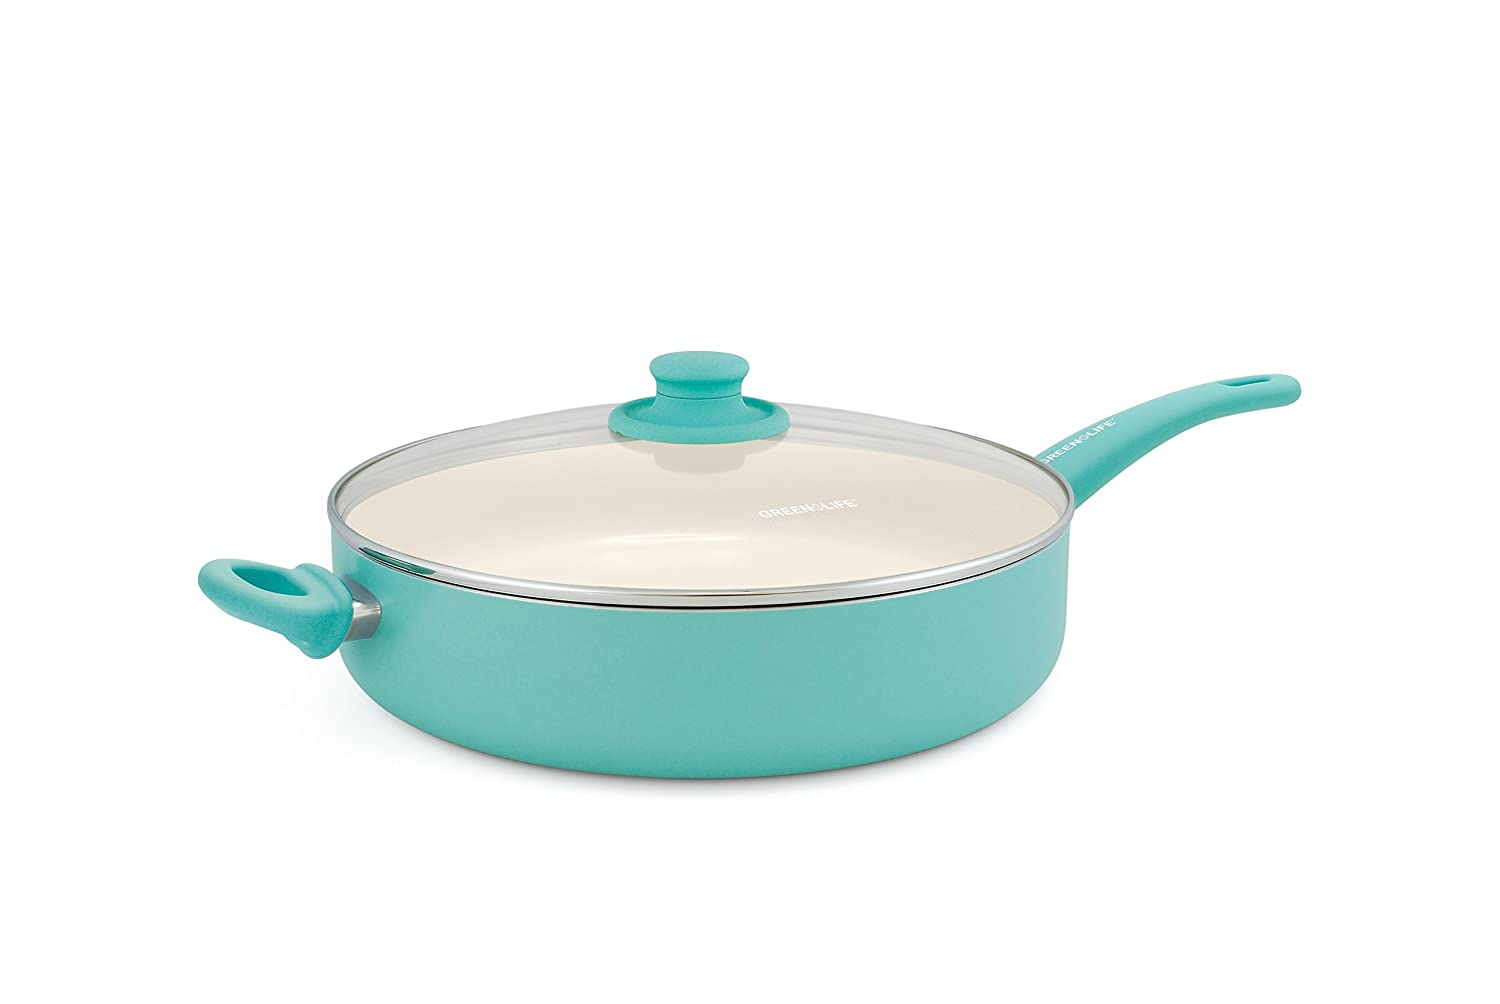 "GreenLife Soft Grip 12"" Ceramic Non-Stick Covered Jumbo Sauté Pan, Turquoise"